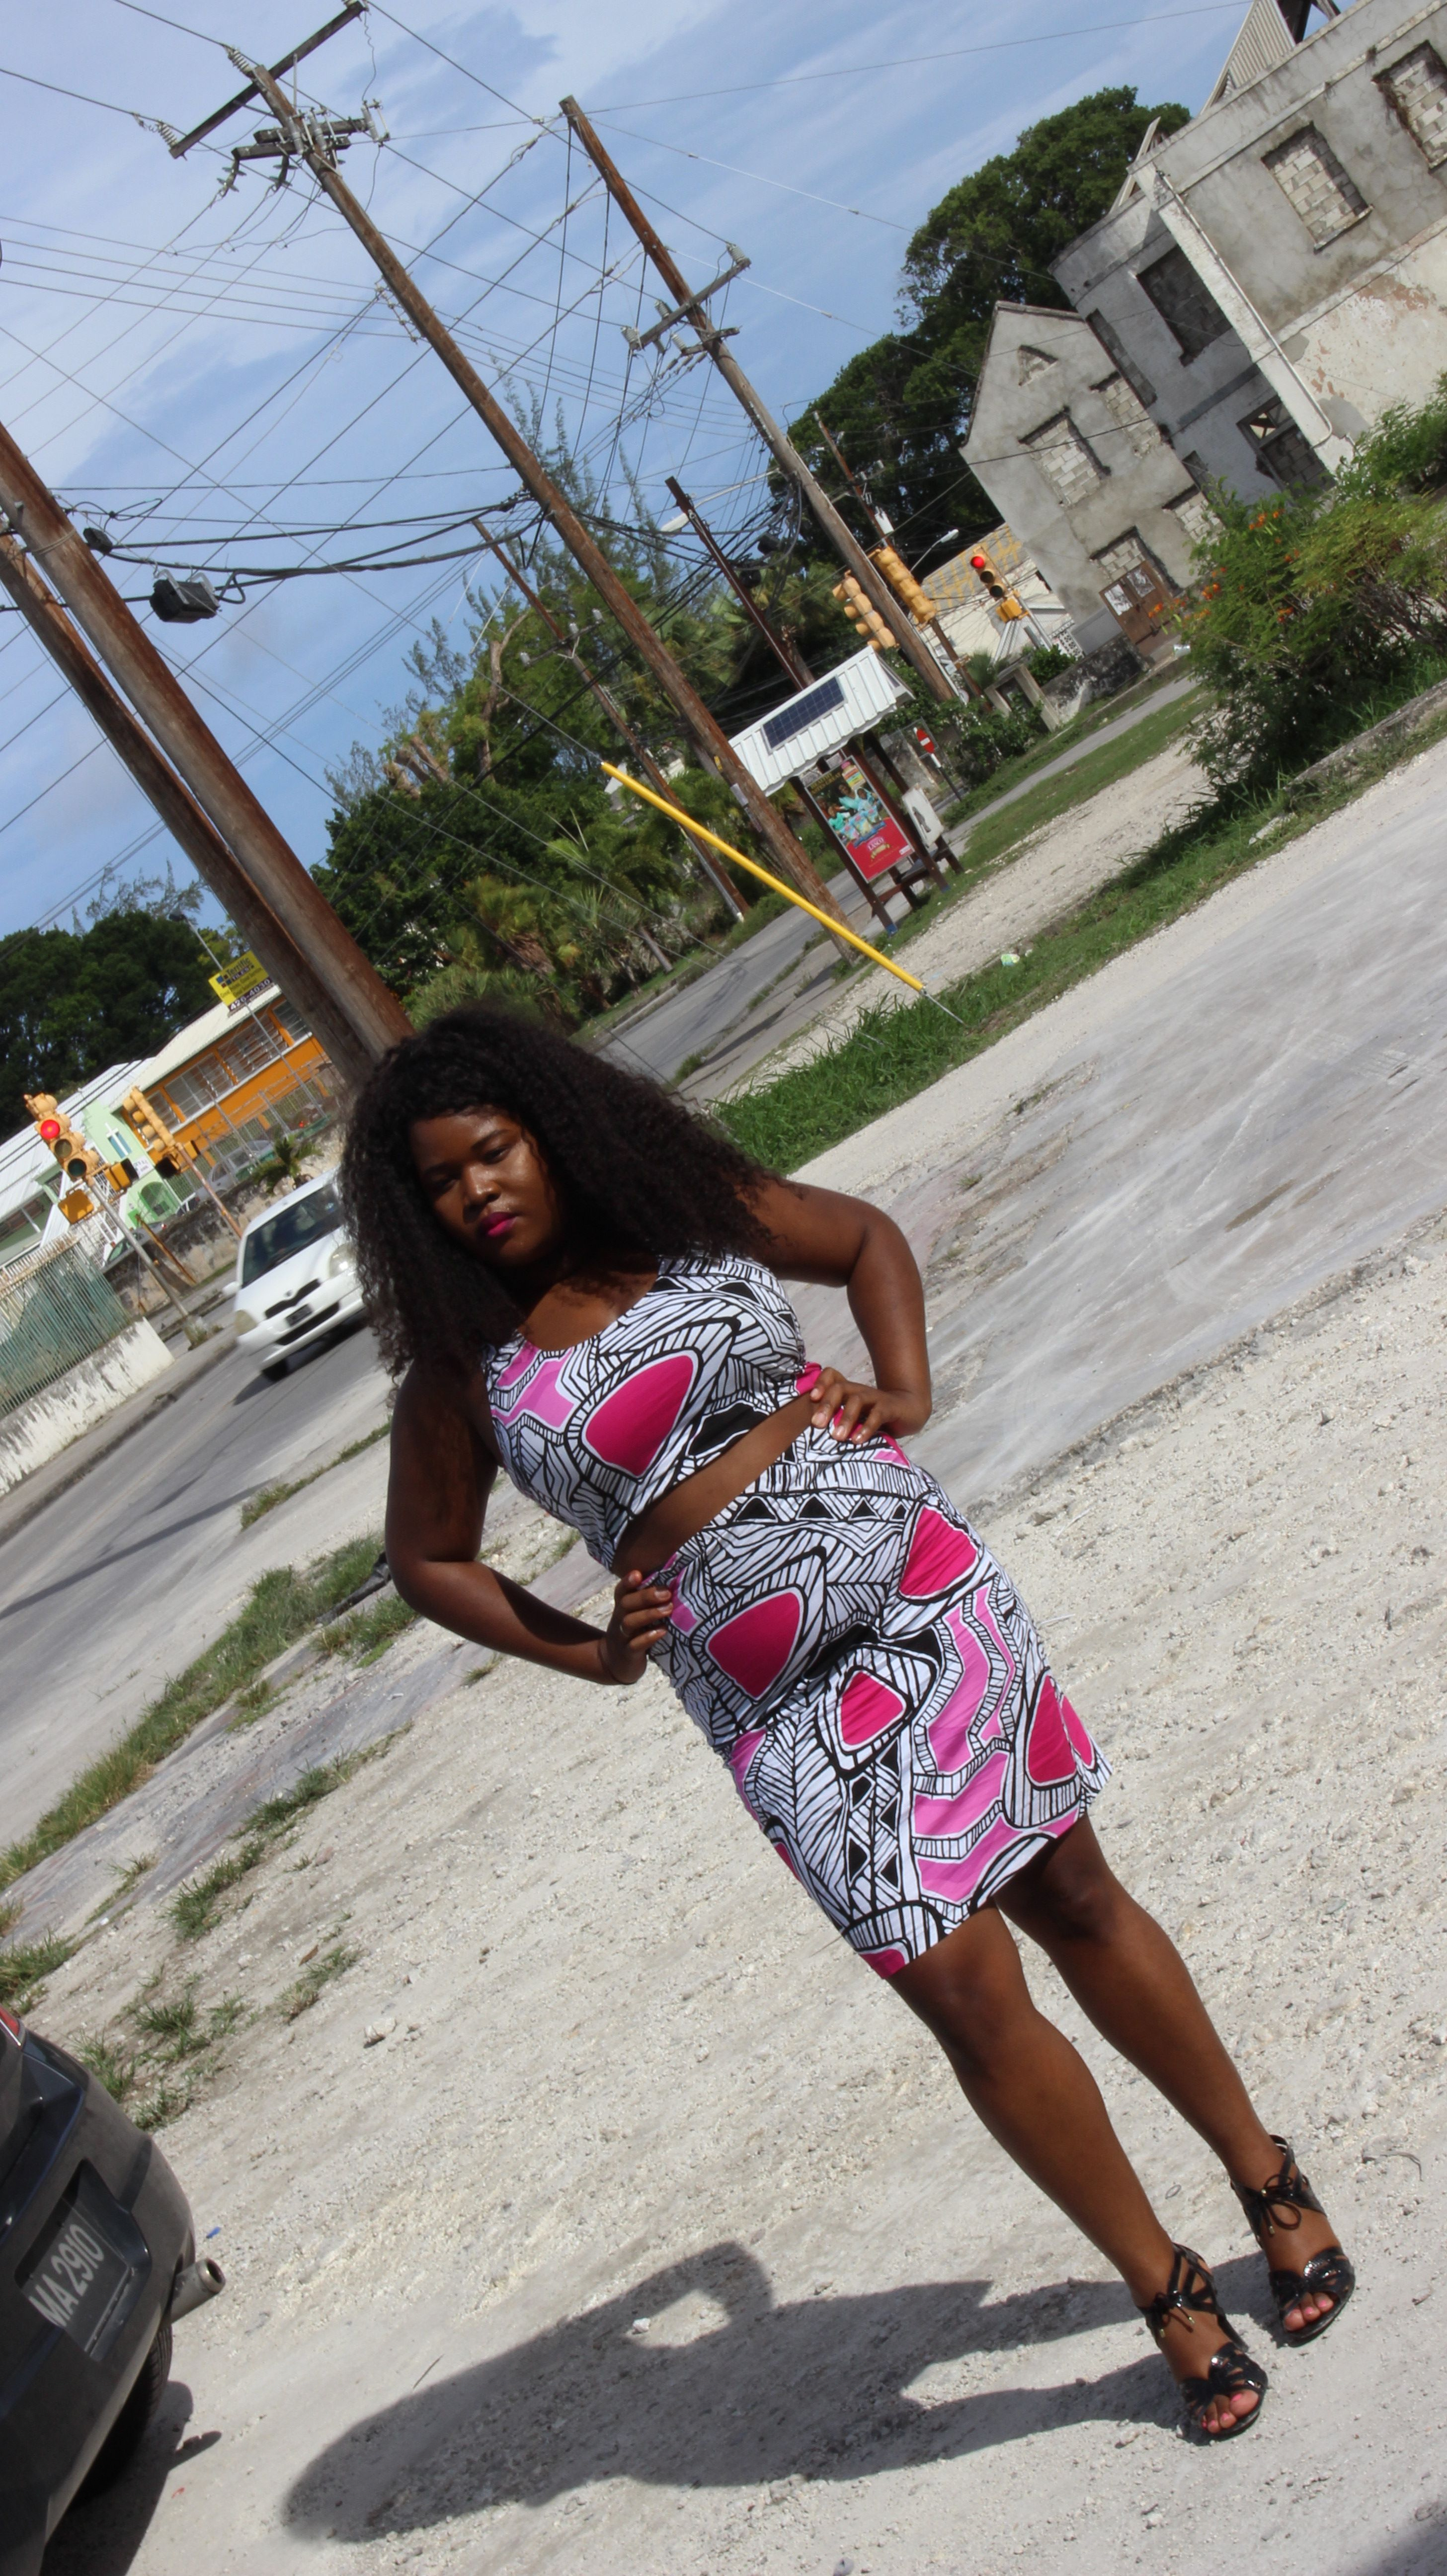 New Post on # BBBG http://www.bigbeautifulblackgirls.com/my-style-frolicking-around-town-in-gianni-mercedes/